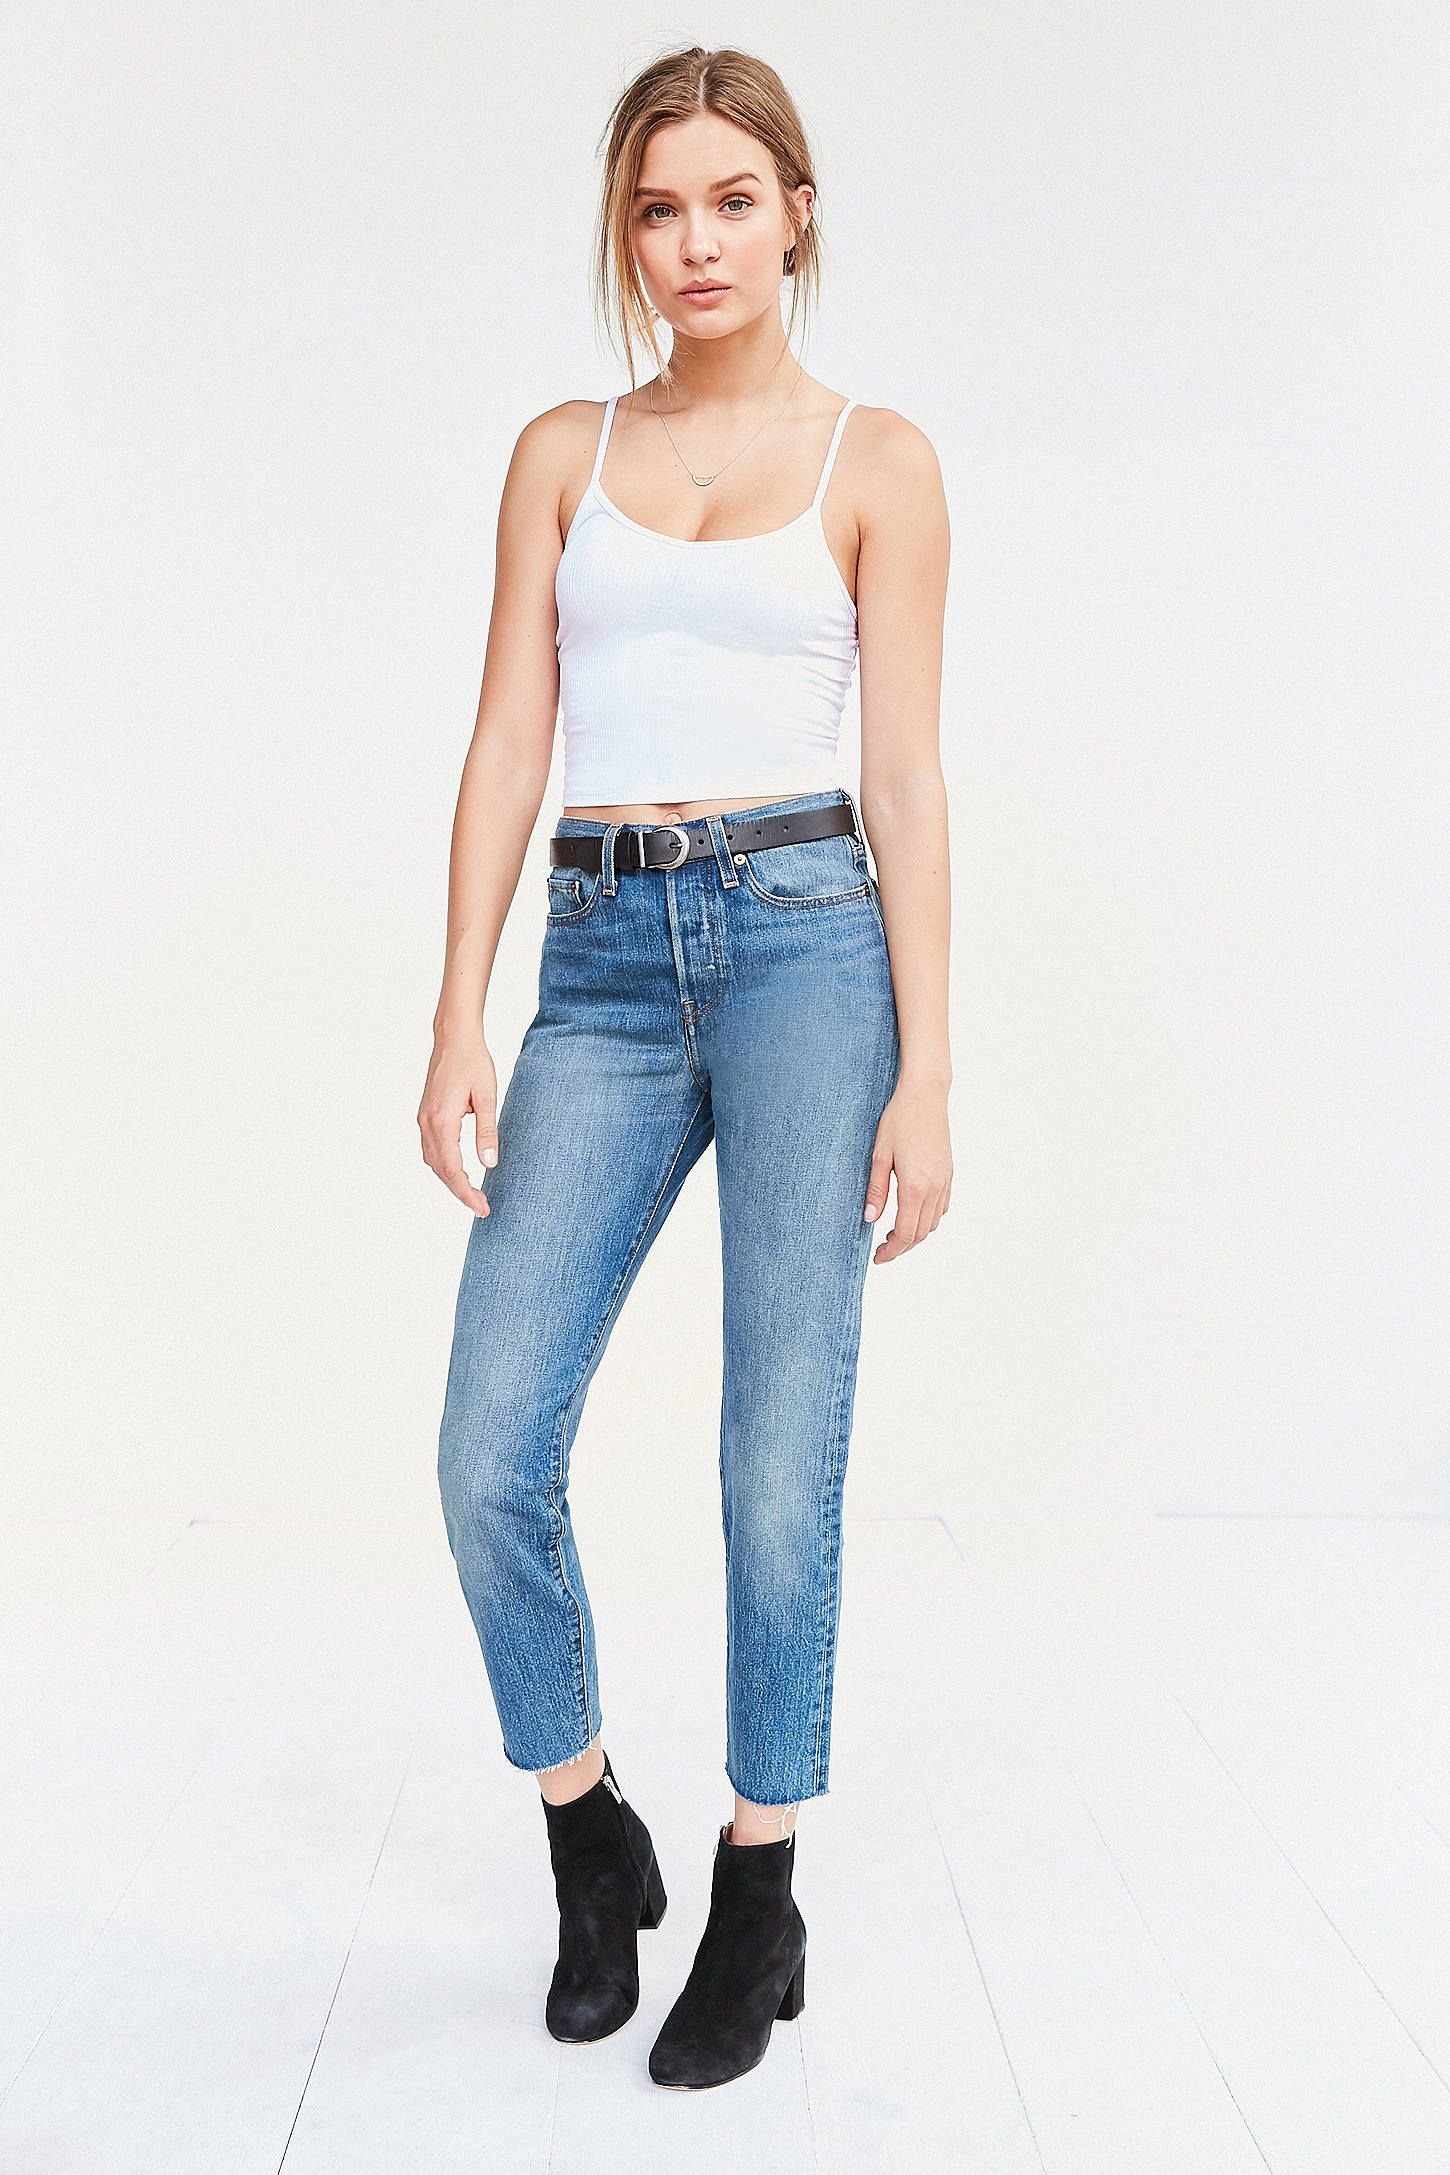 Levi's Wedgie High-Rise Jean - Coyote Desert